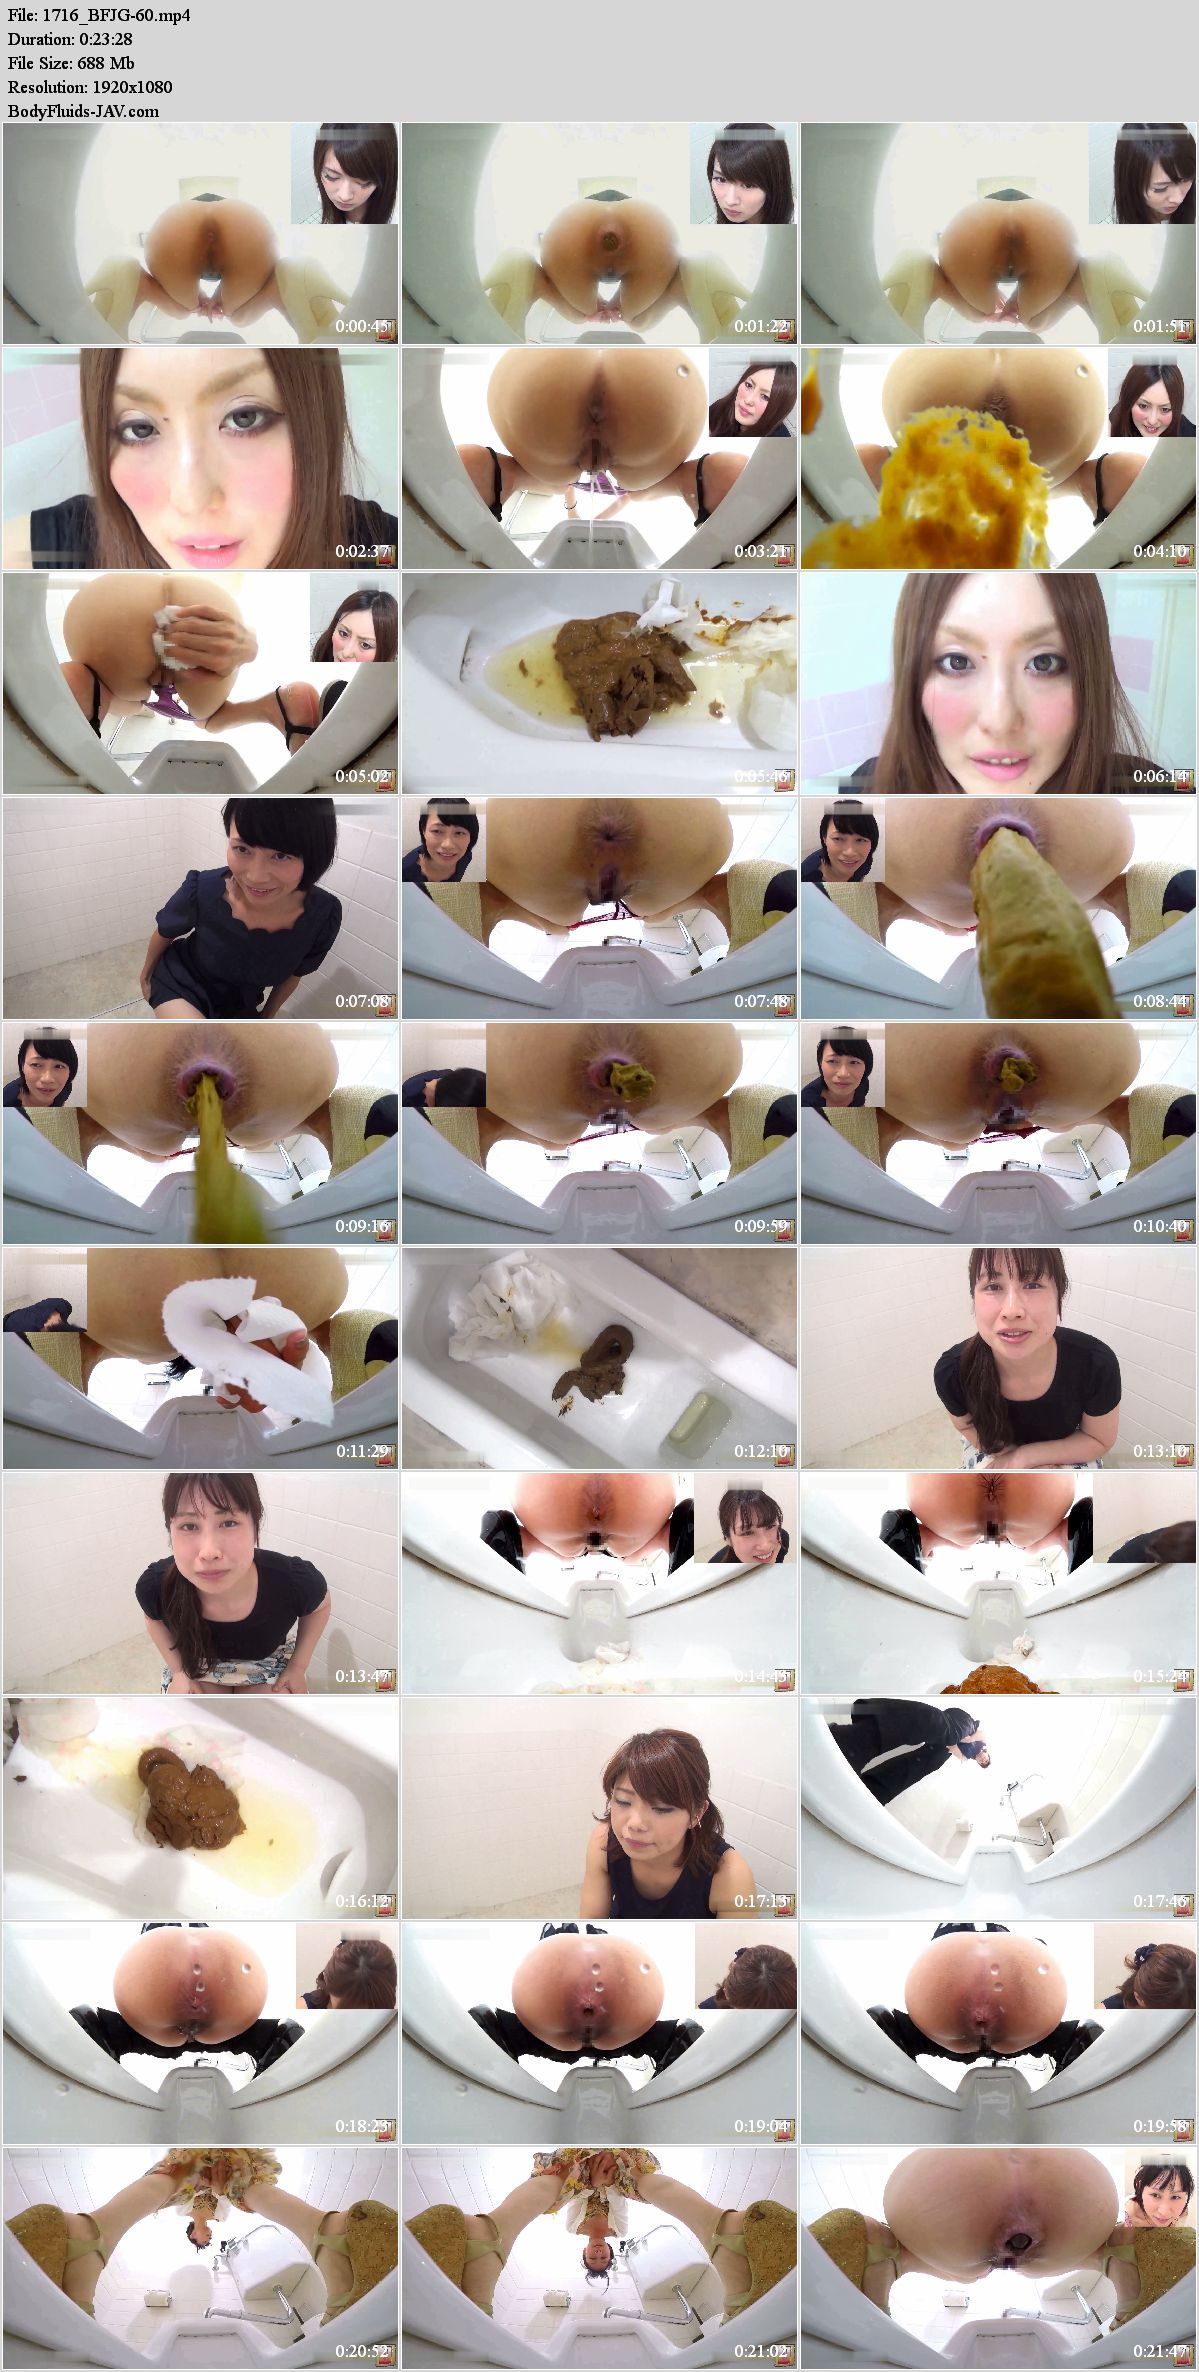 BFJG-60 Girls self filmed defecation in public toilet. (HD 1080p)